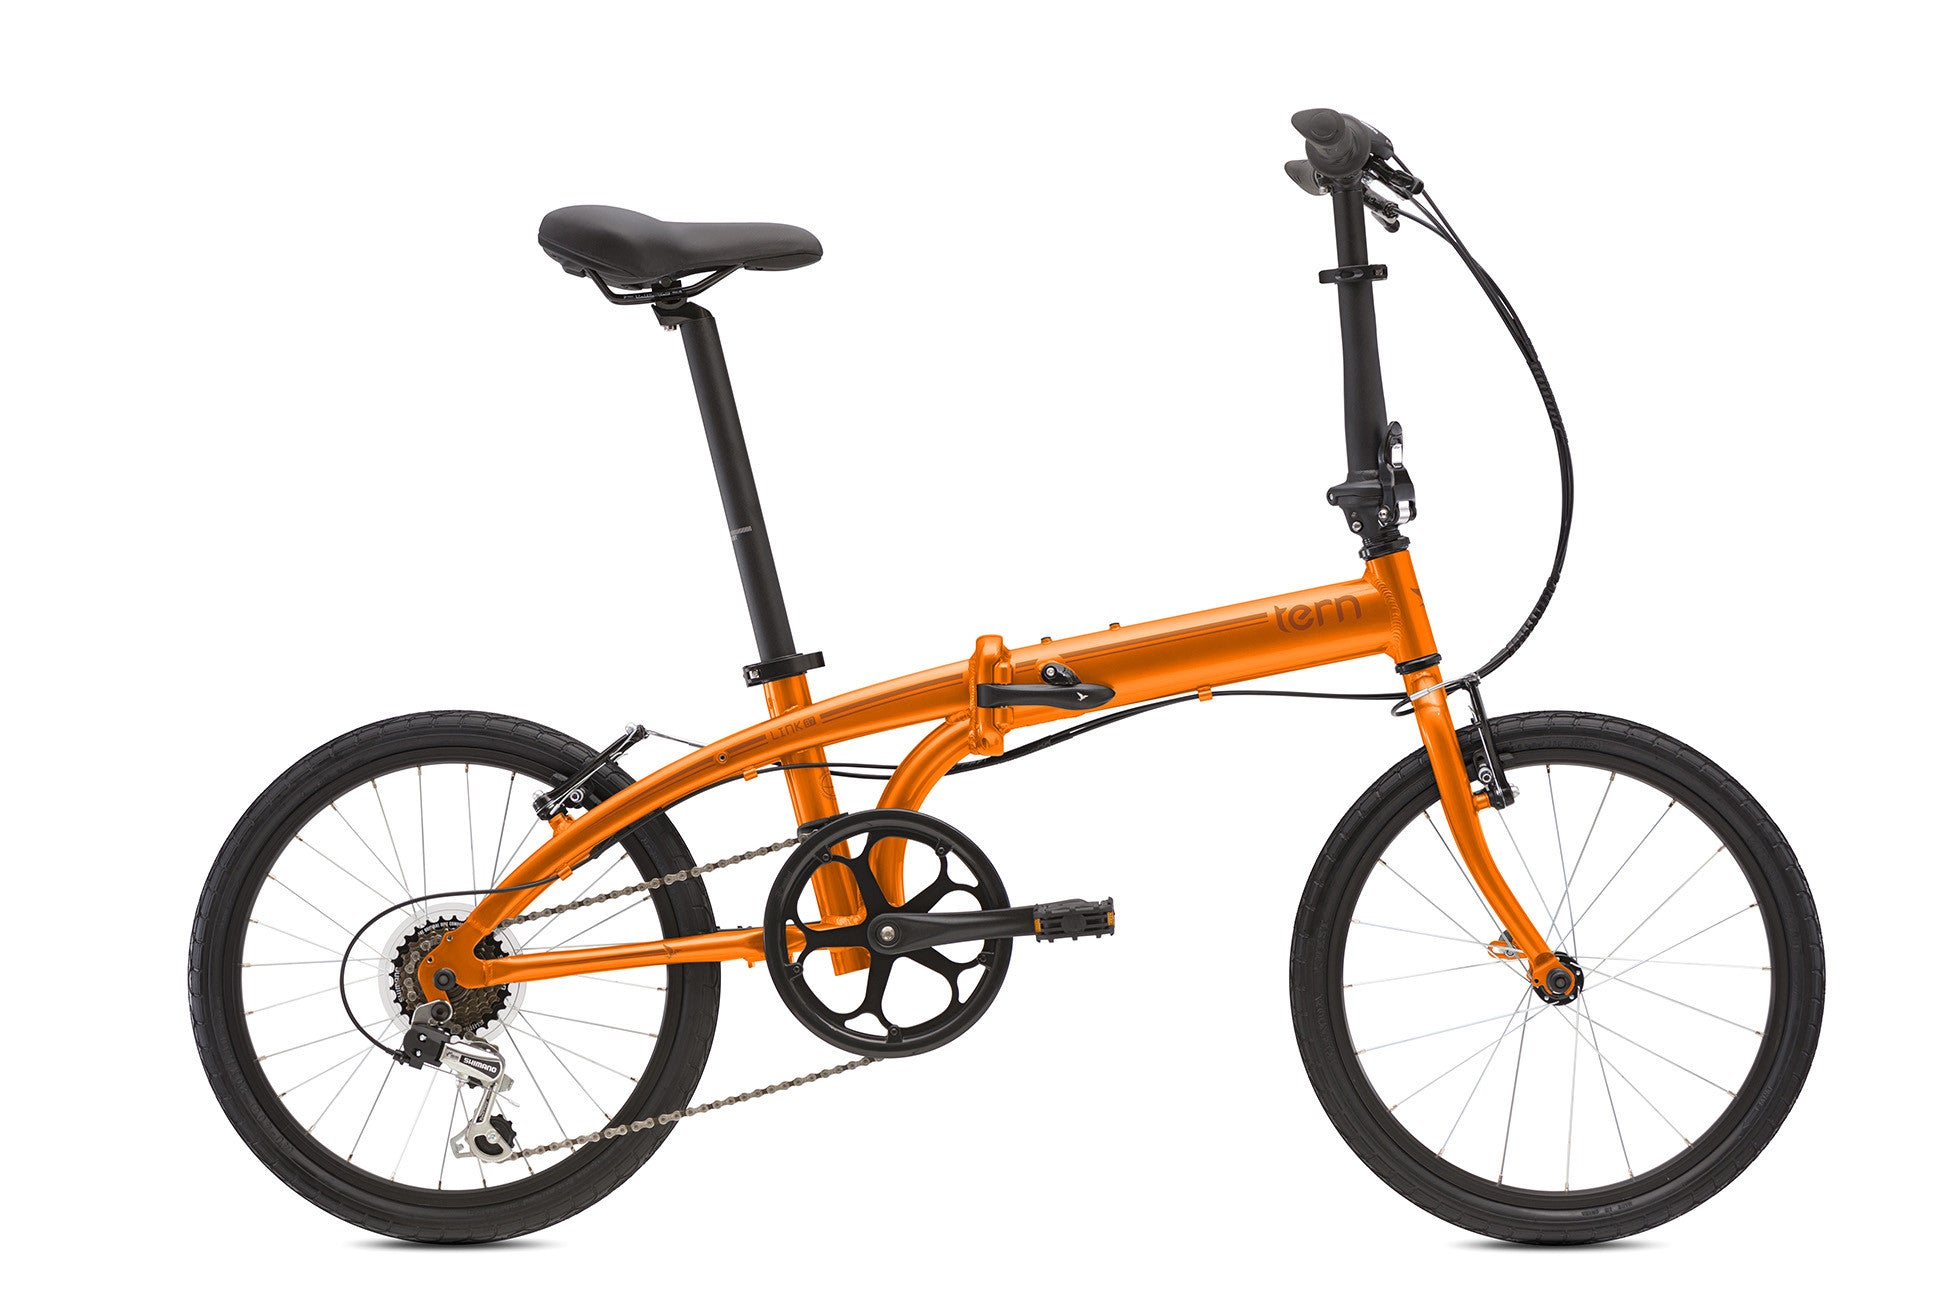 TERN LINK B7 ORANGE FOLDING BICYCLE